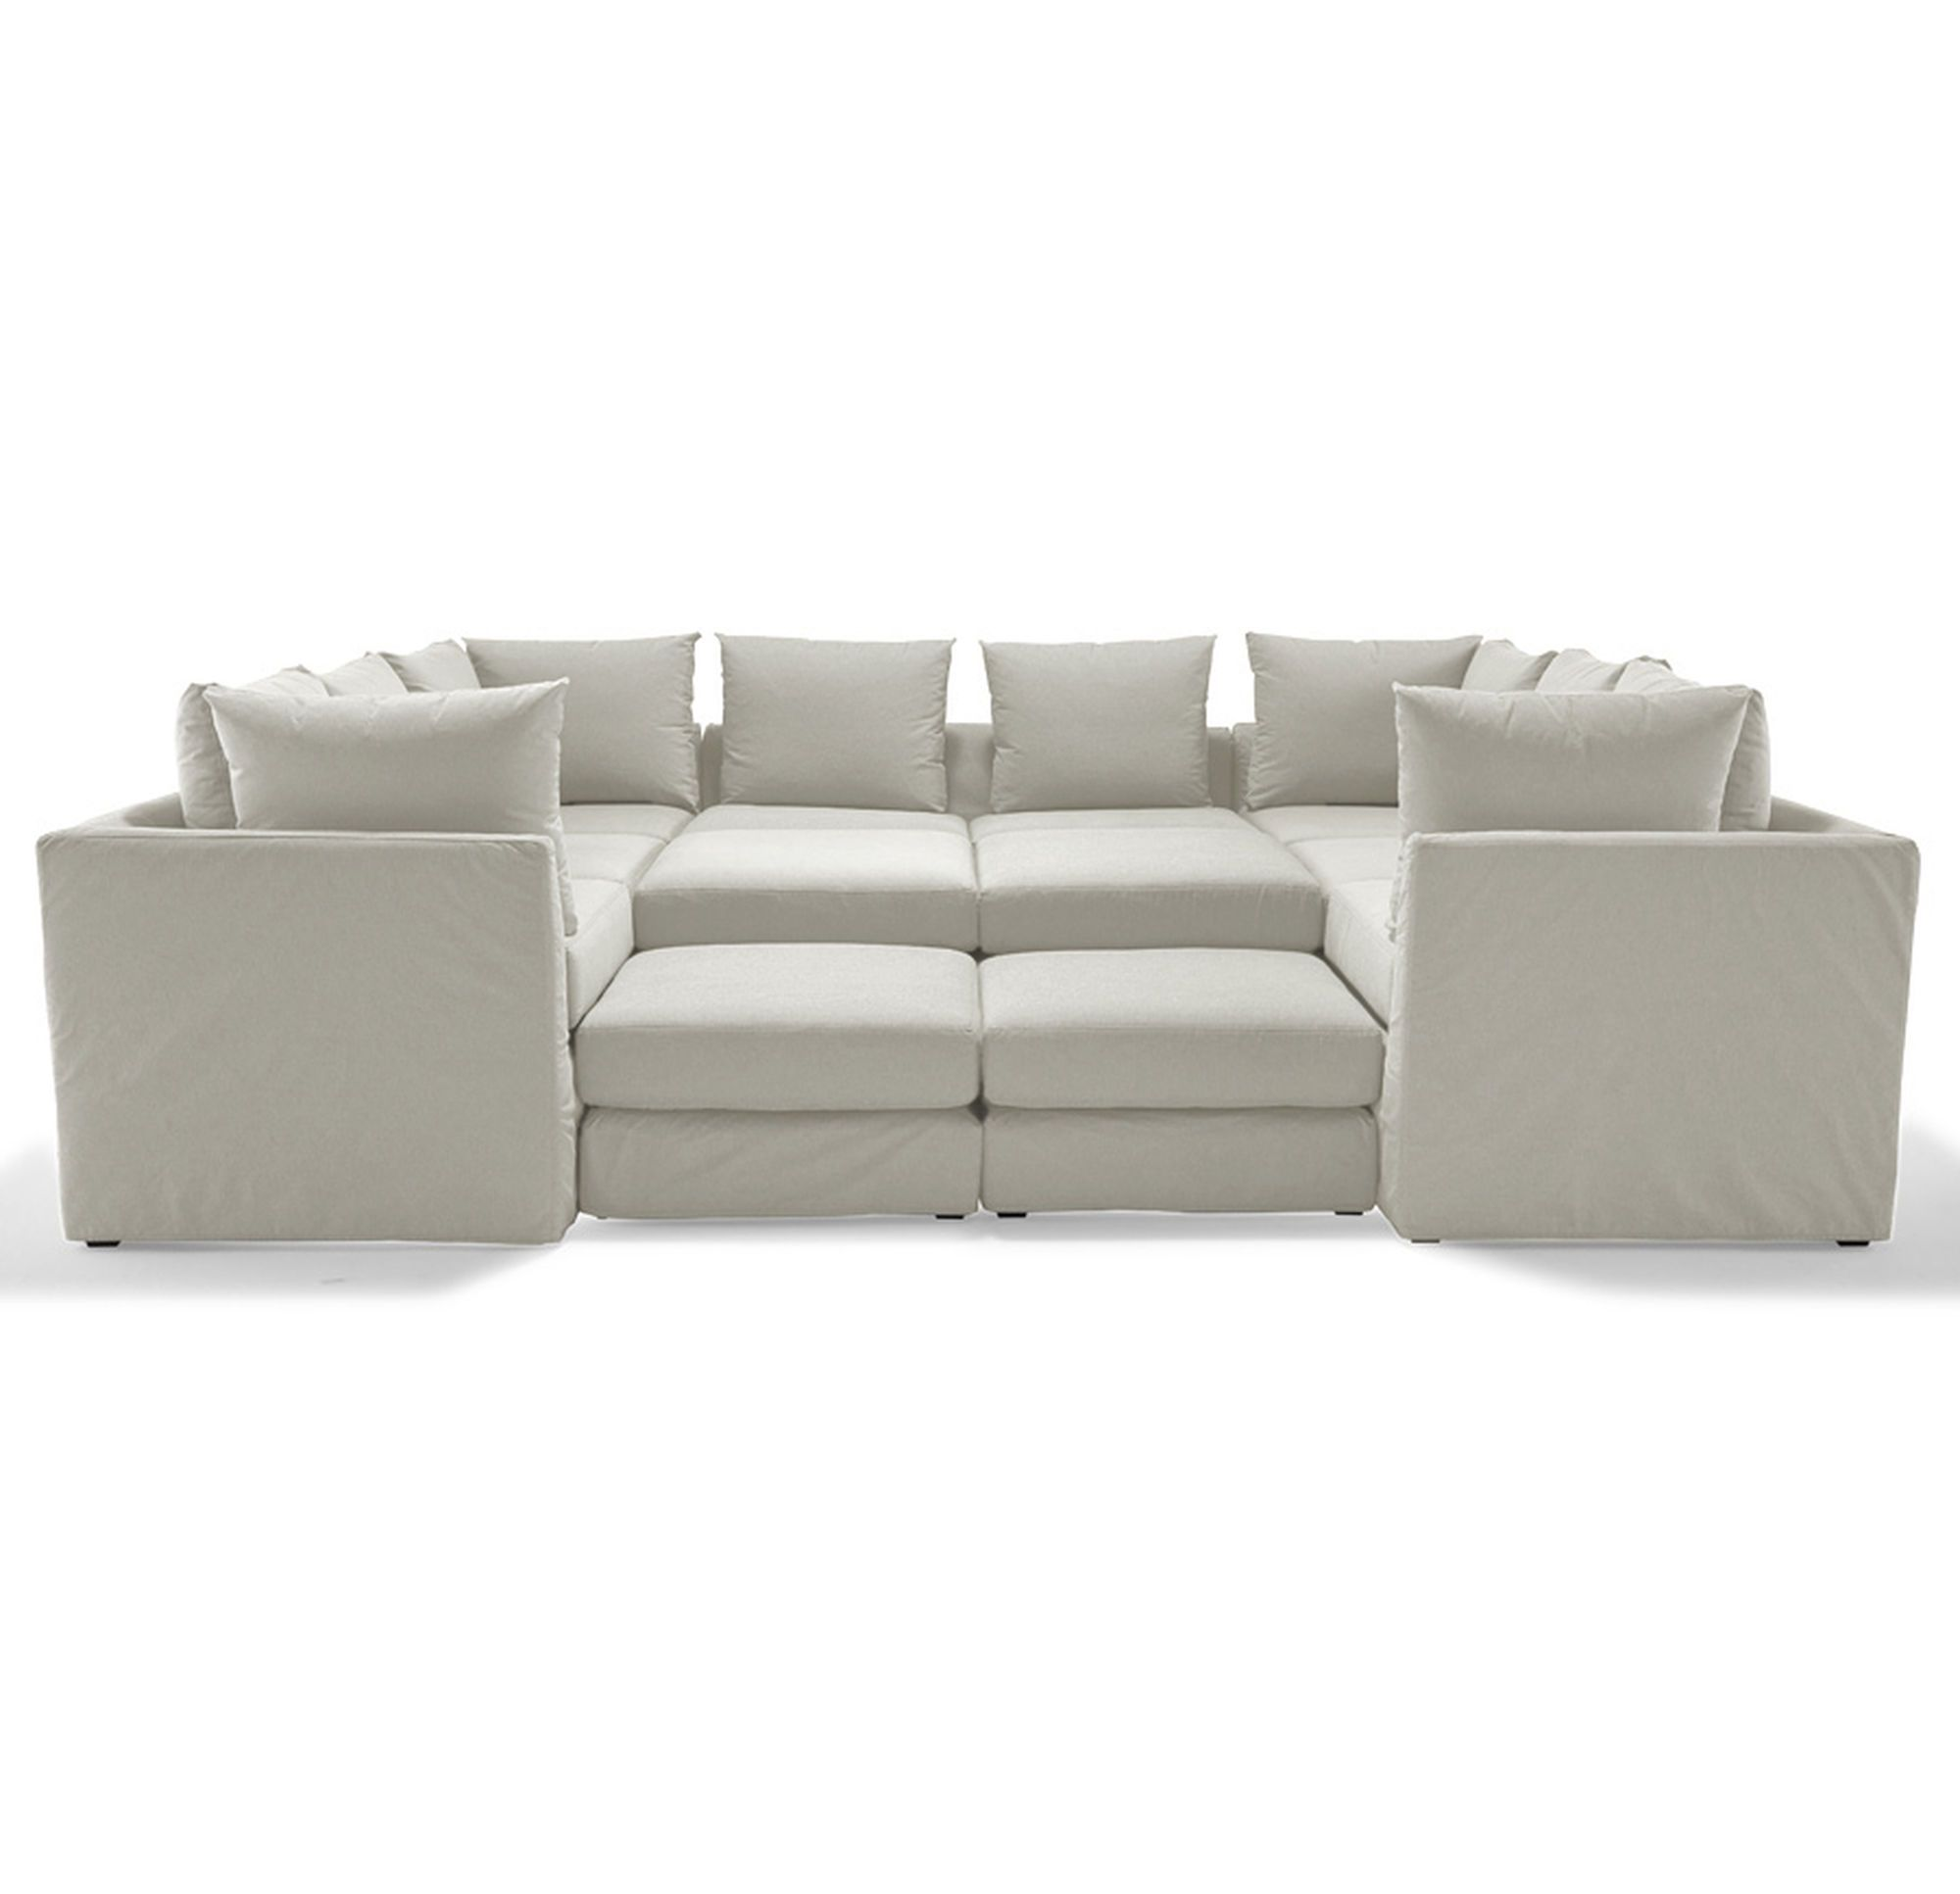 Remarkable Dr Pitt 7 Pc Sectional Chambray Natural Hi Res Bralicious Painted Fabric Chair Ideas Braliciousco